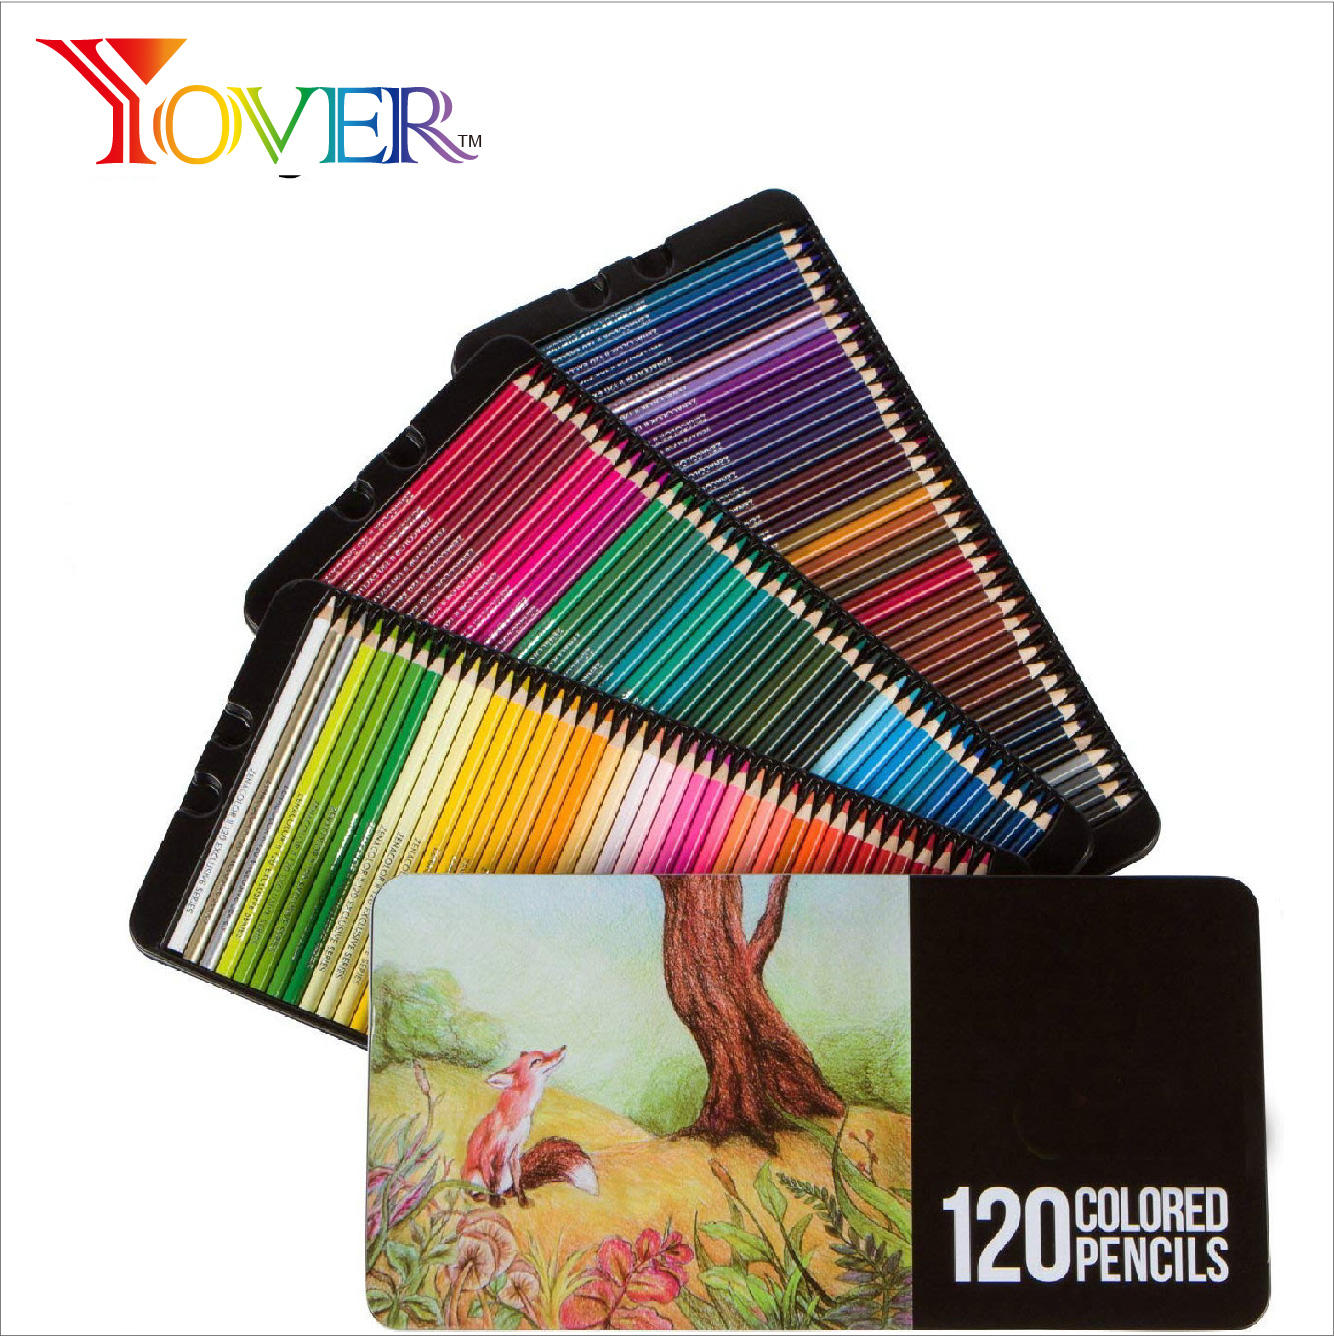 Hot Sale On-line High Quality 120pcs Premium Artist Colored Pencils in Tin Box